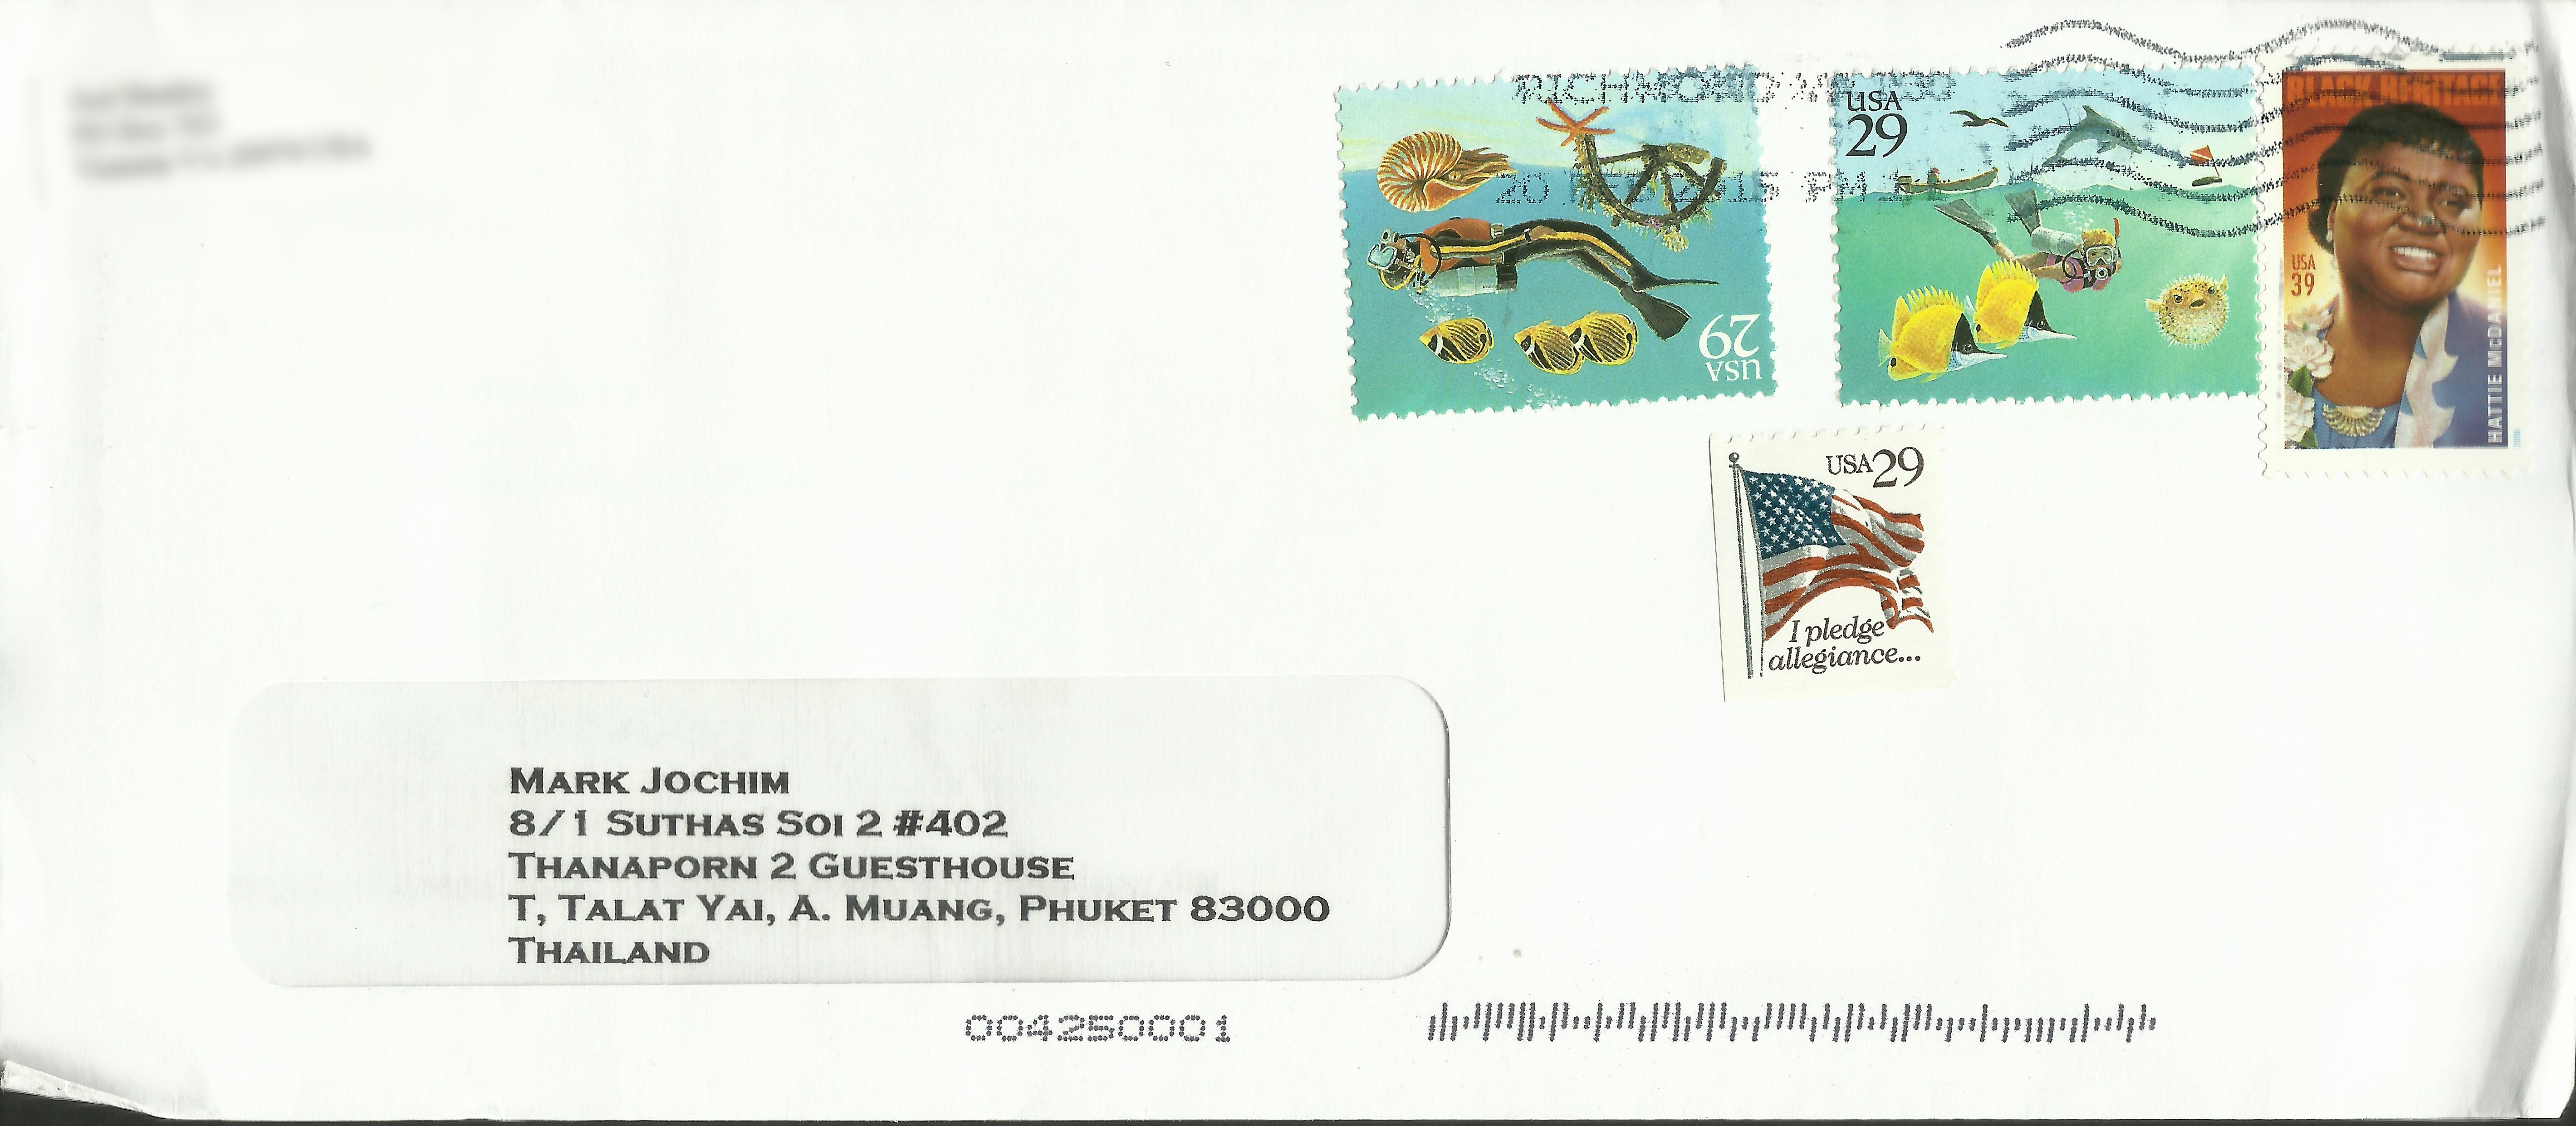 Oddly enough, I only have one copy of United States Scott #2593, which arrived on a letter in 2015.